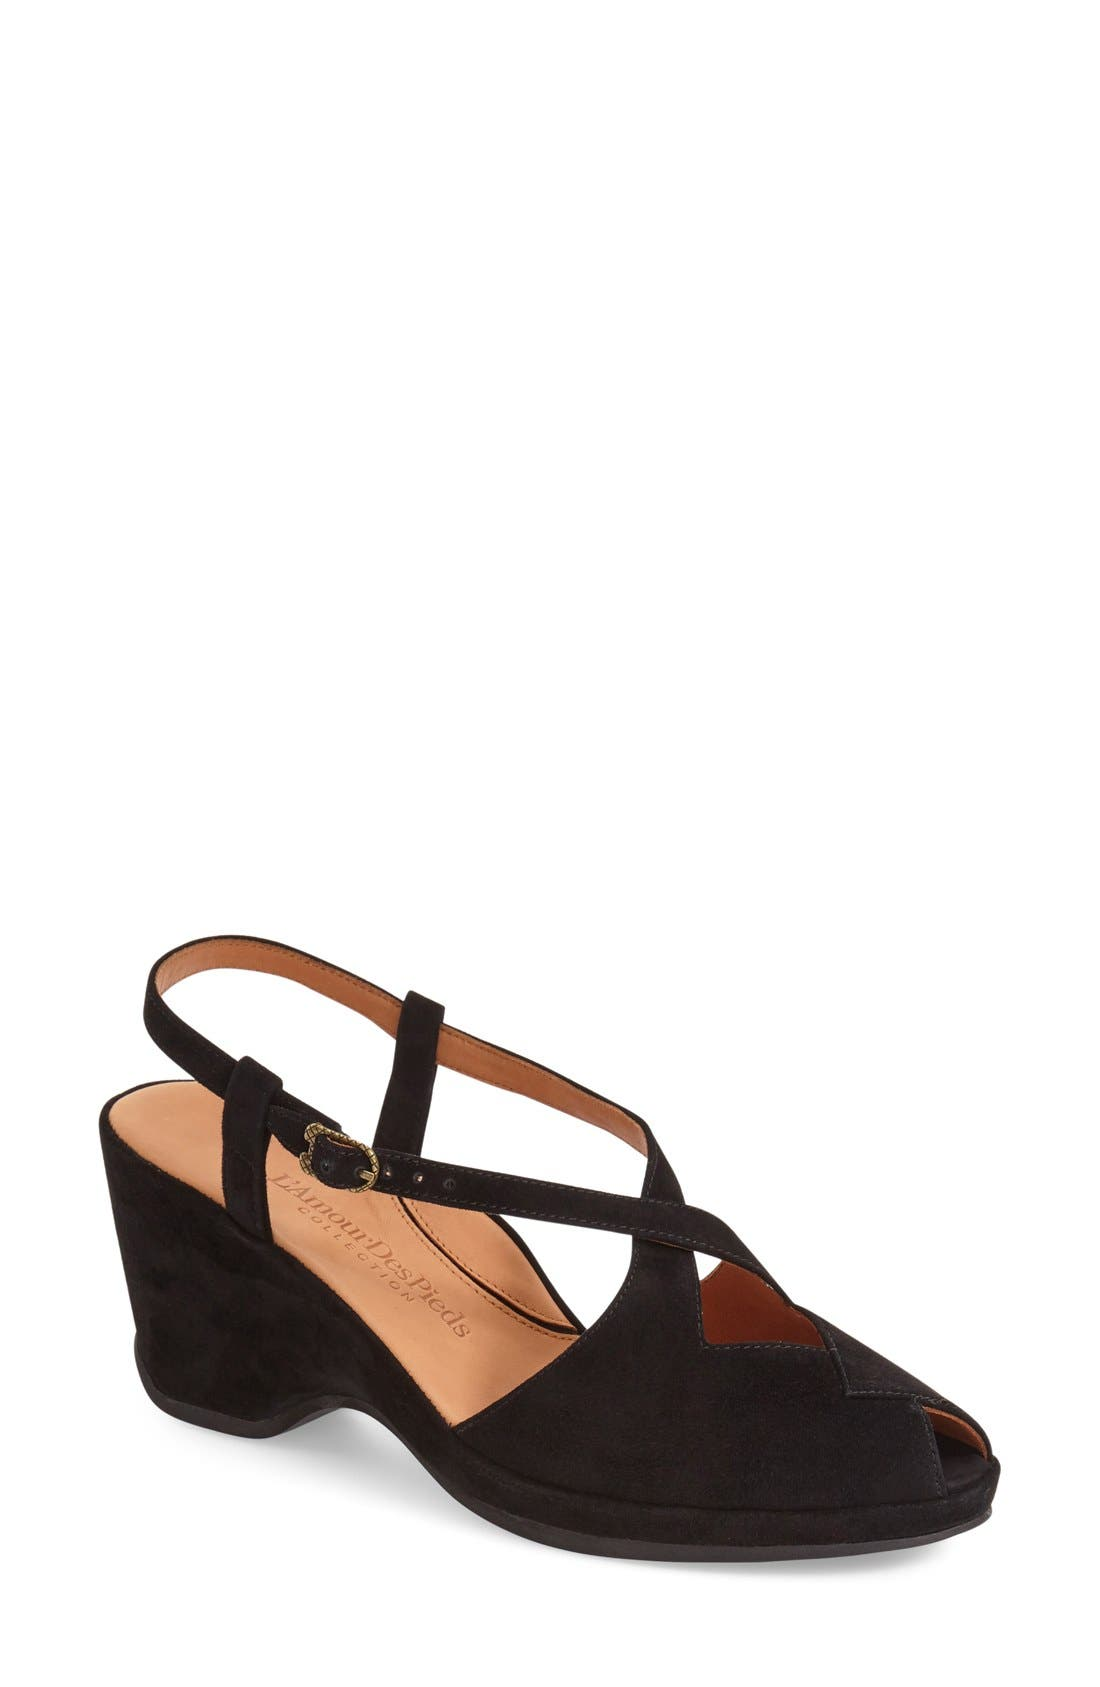 'Oraine' Sandal,                         Main,                         color, BLACK SUEDE LEATHER